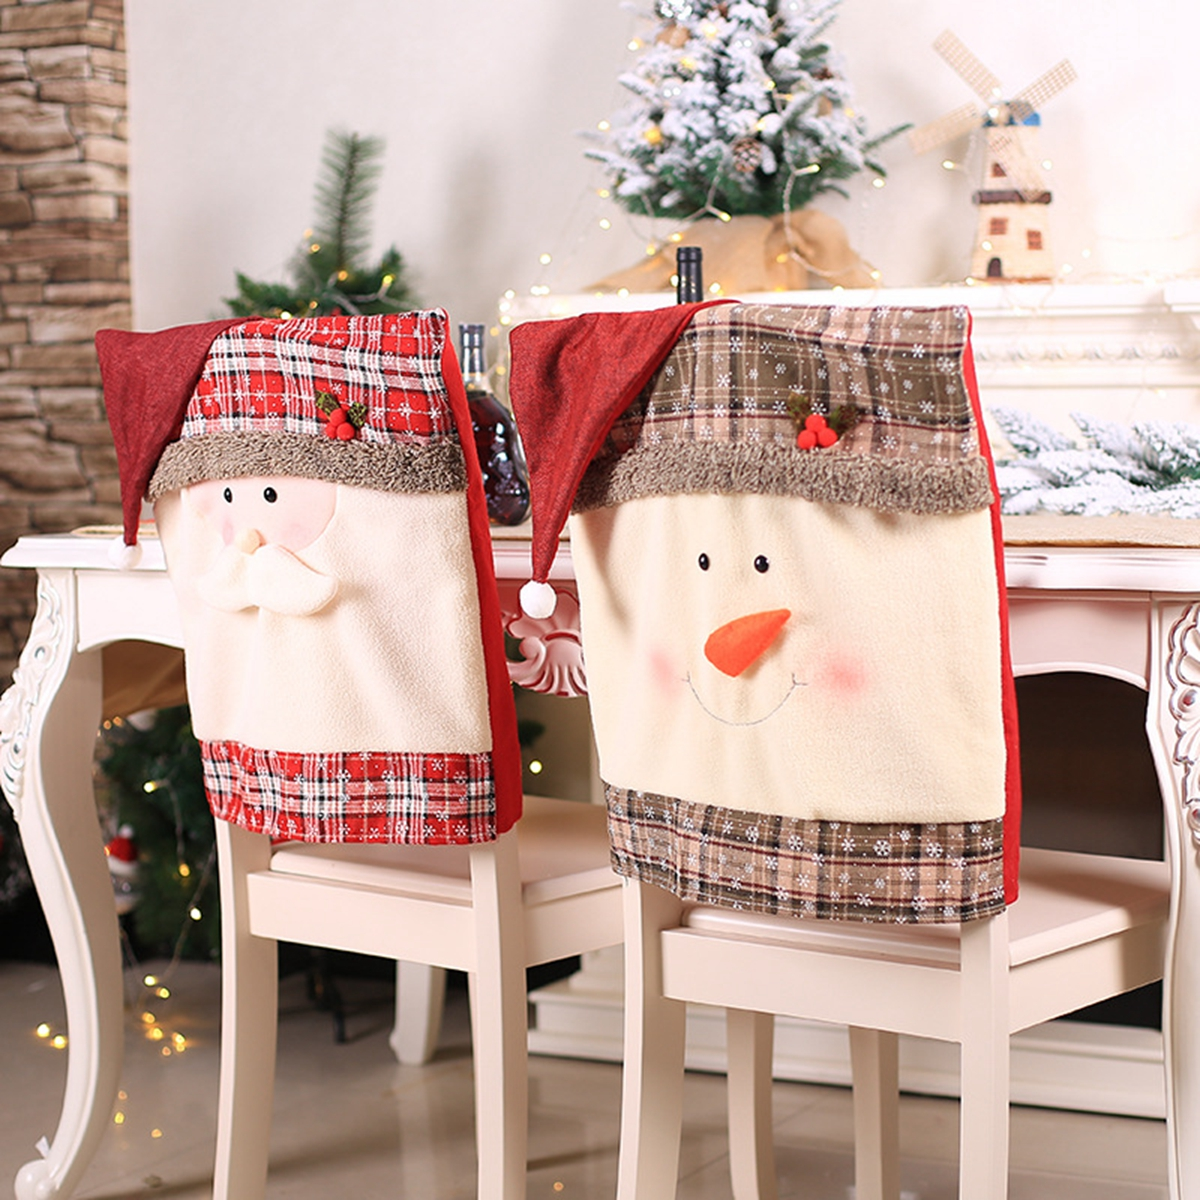 Christmas Chair Back Covers.Details About Santa Claus Chair Back Cover Decor Christmas Dining Chair Decoration Home Party